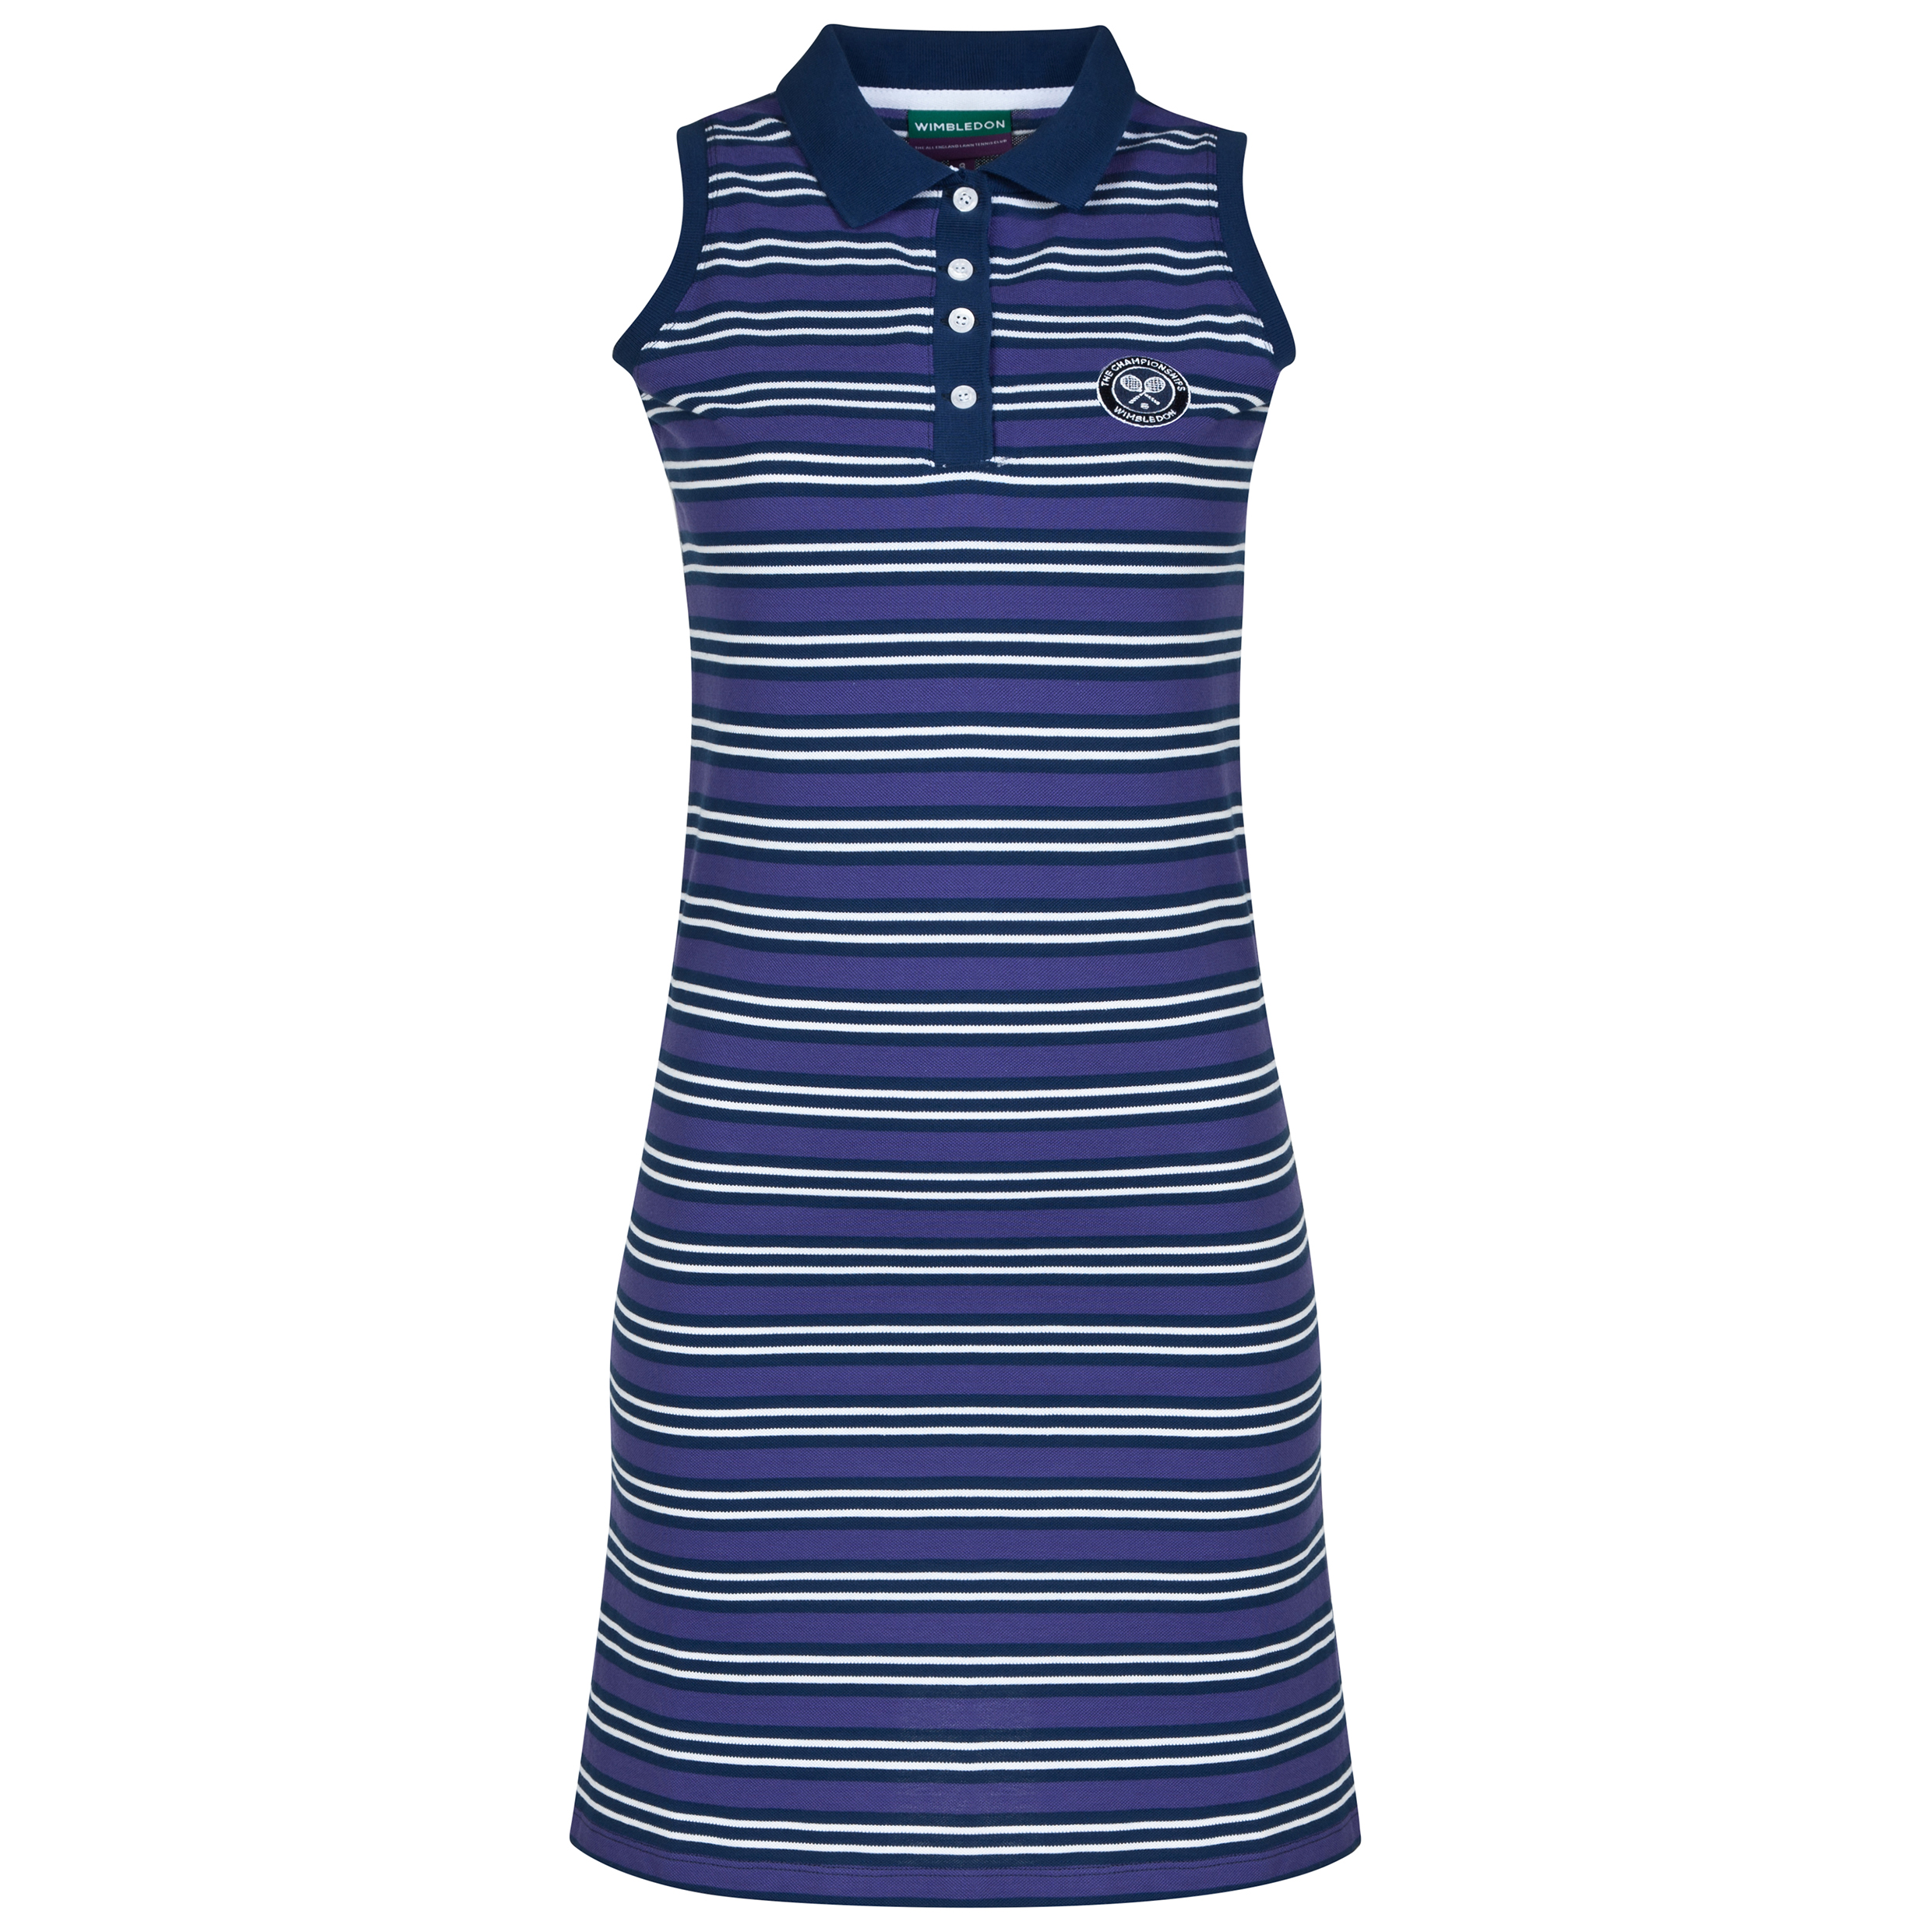 Wimbledon Stripe Pique Tennis Dress - Womens Navy